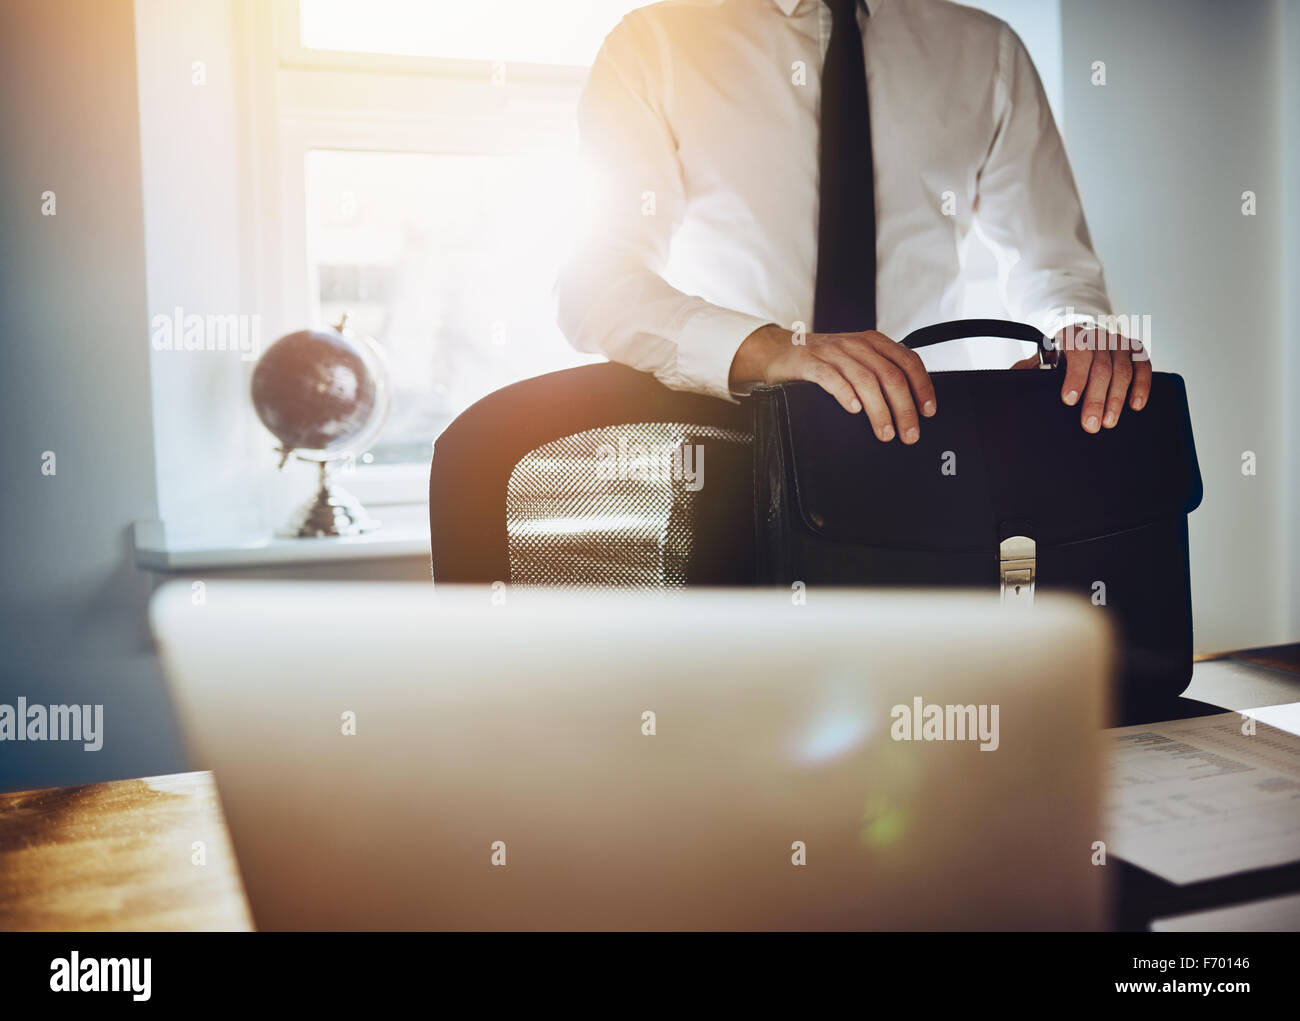 Business concept, man standing at desk with briefcase and laptop wearing a classic business outfit - Stock Image